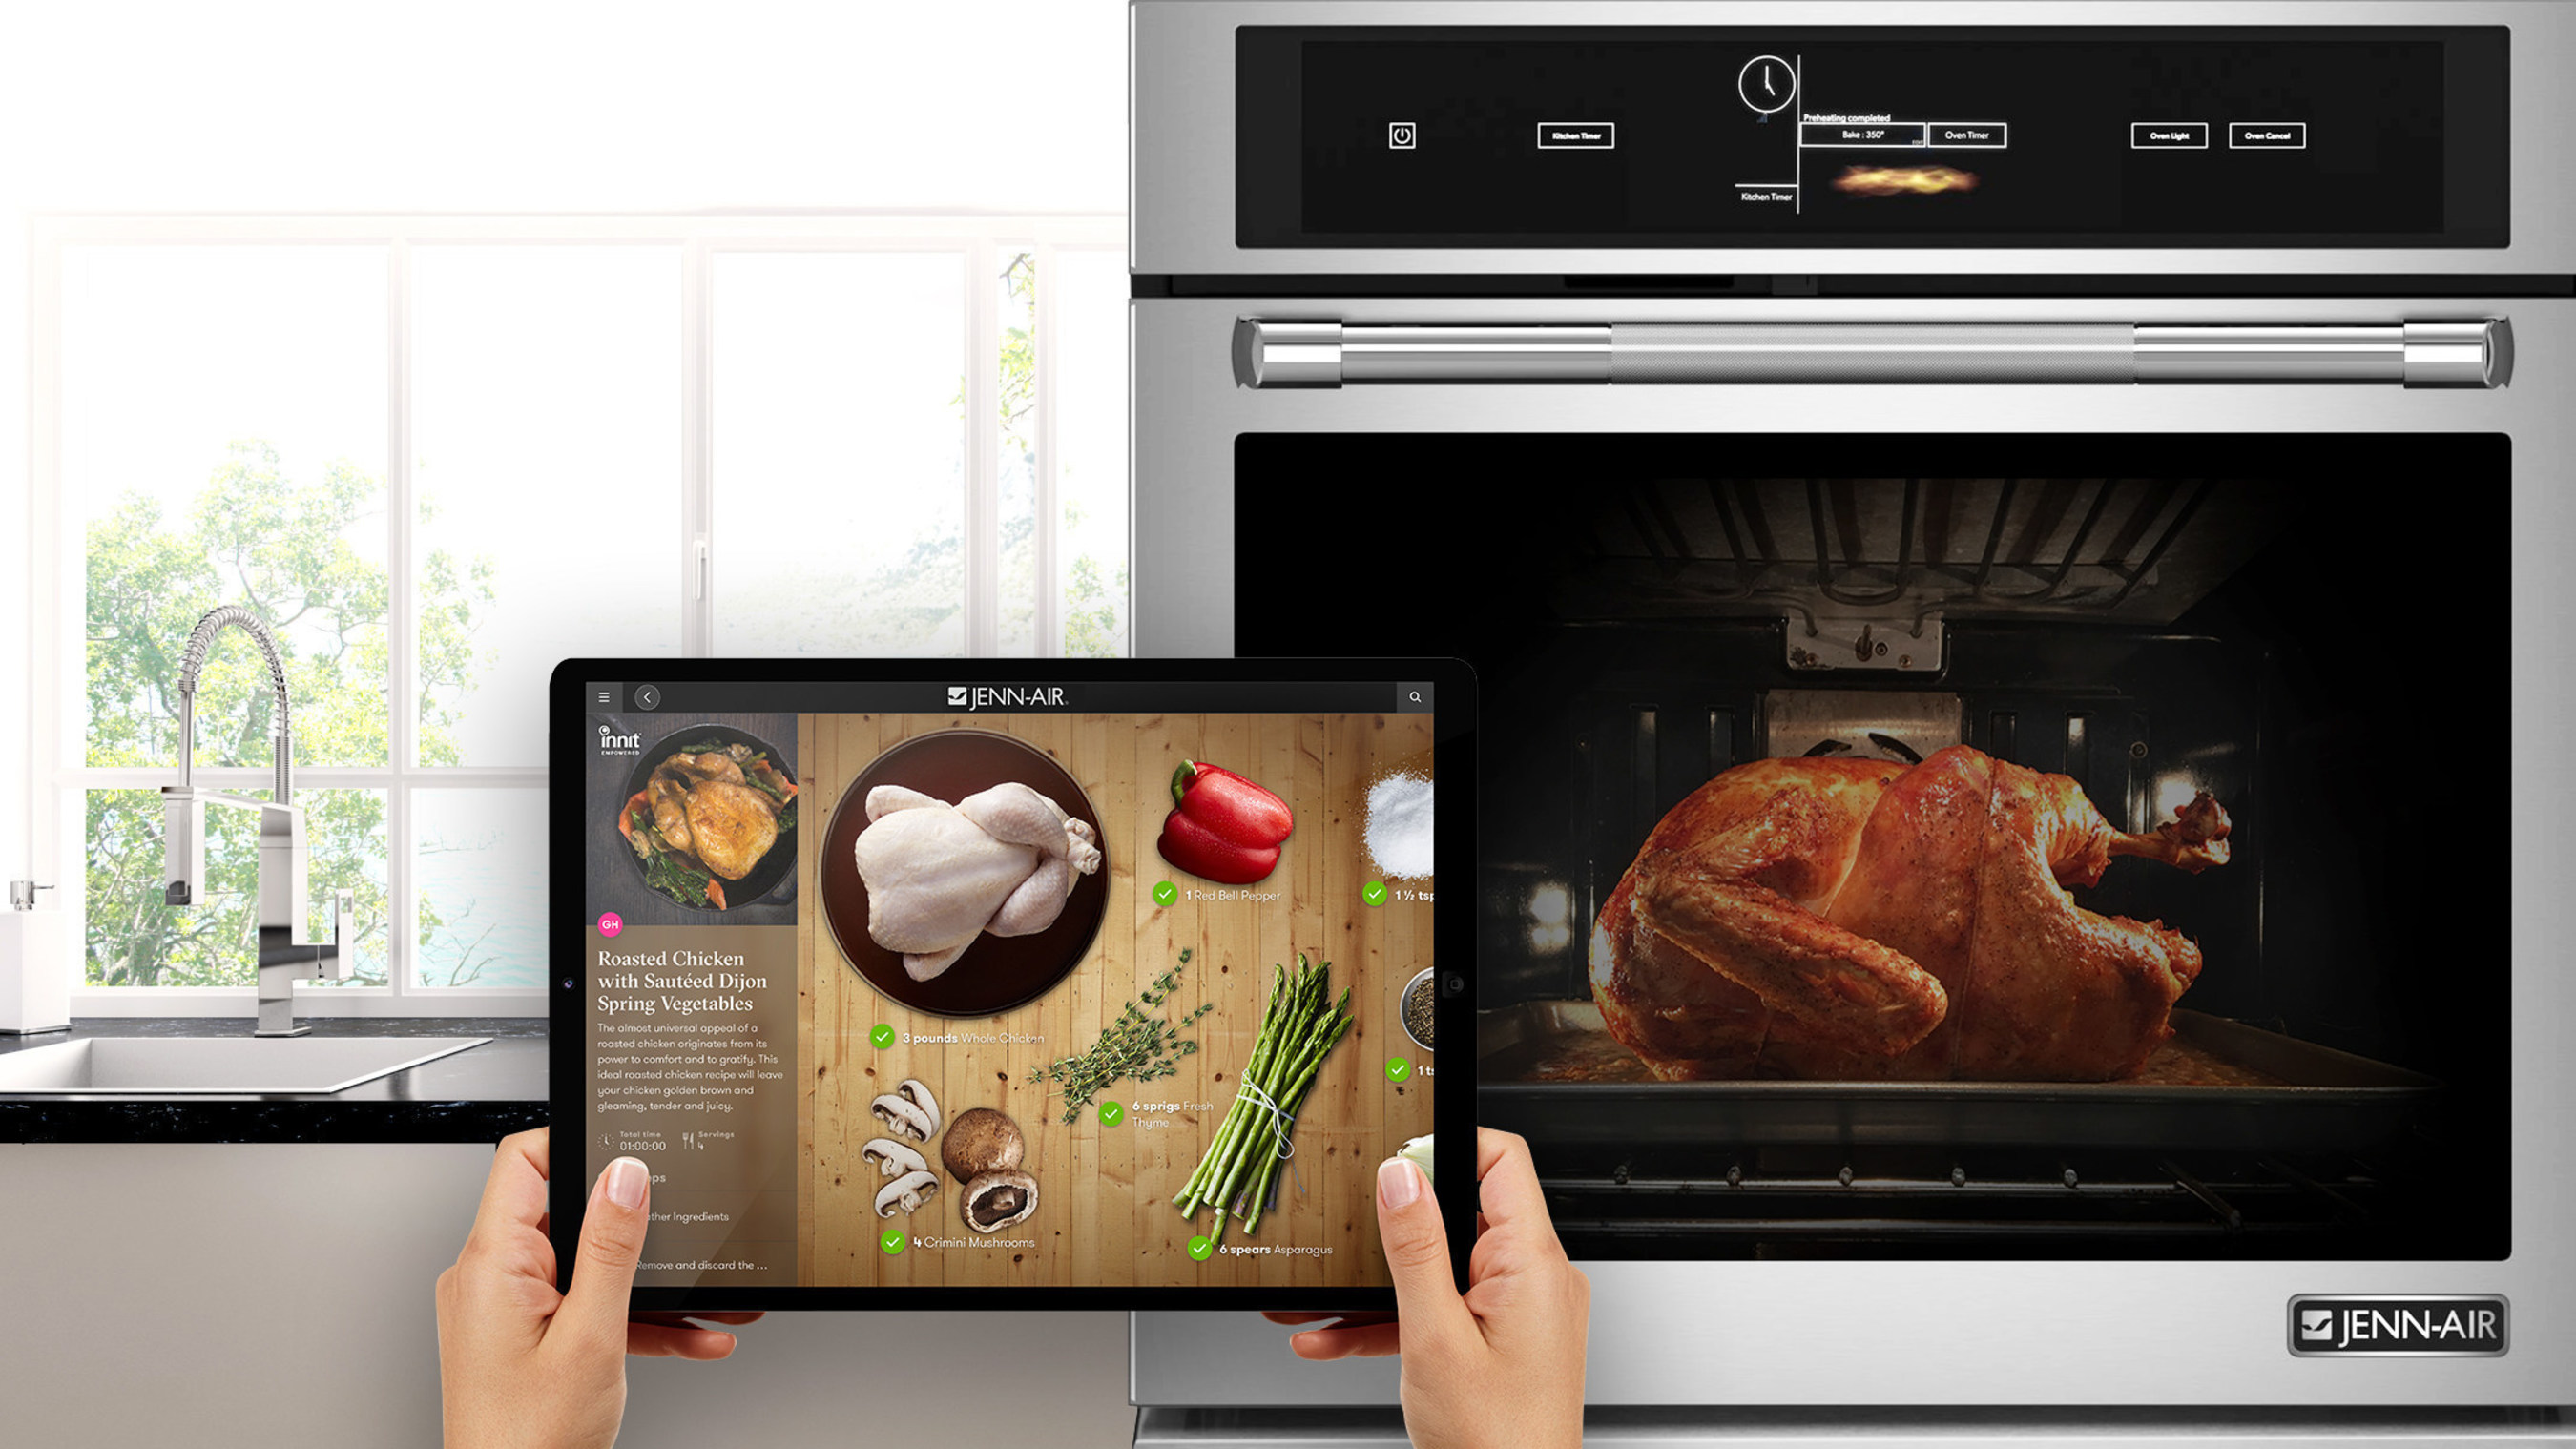 Whirlpool Corporation Connected Cooking Appliances, Starting With  Jenn Air(R) Brand WiFi